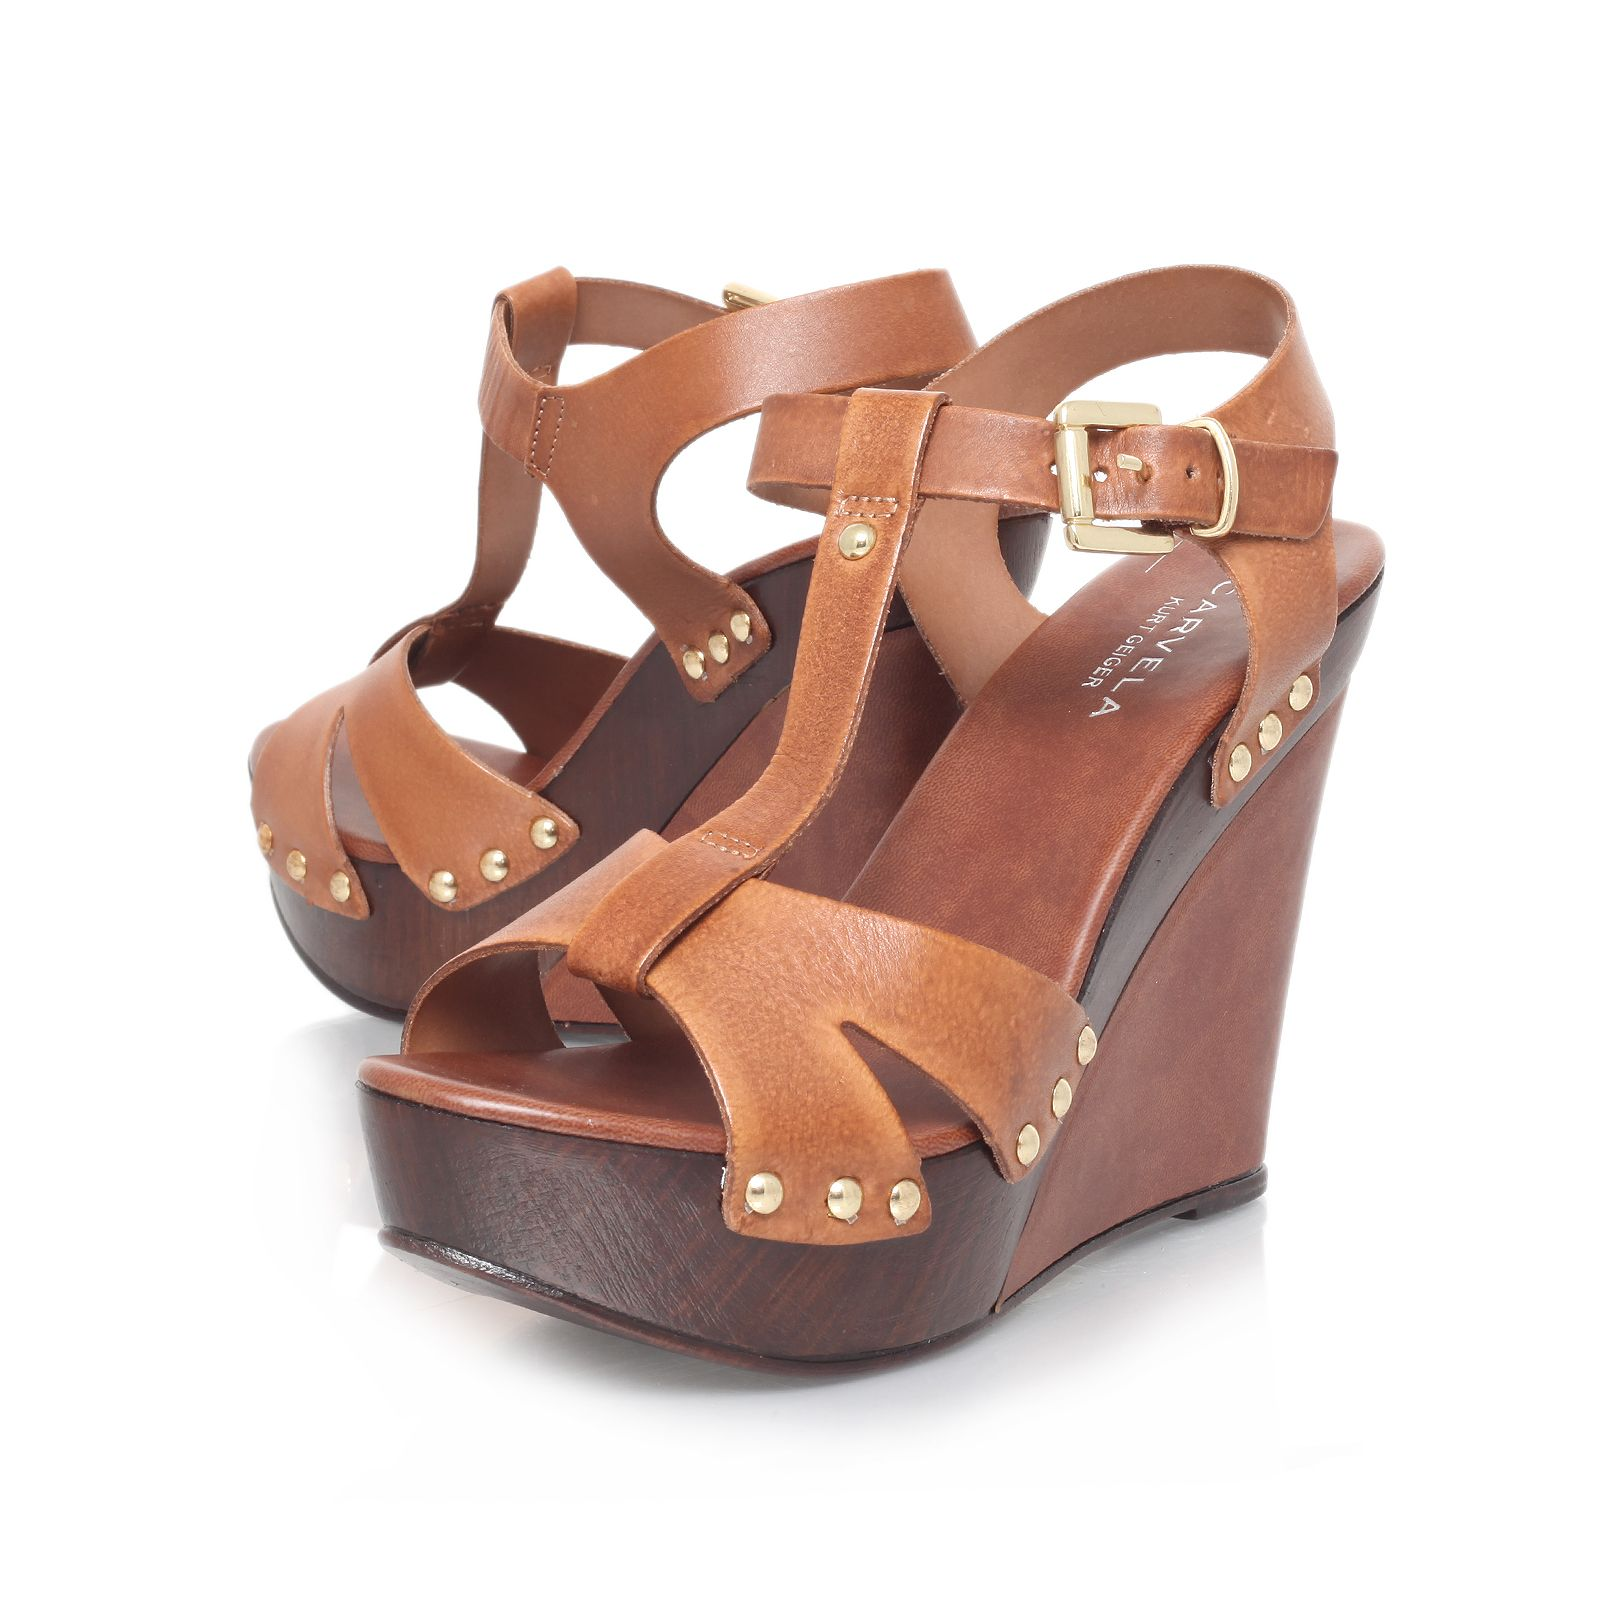 Katey high heel wedge sandals